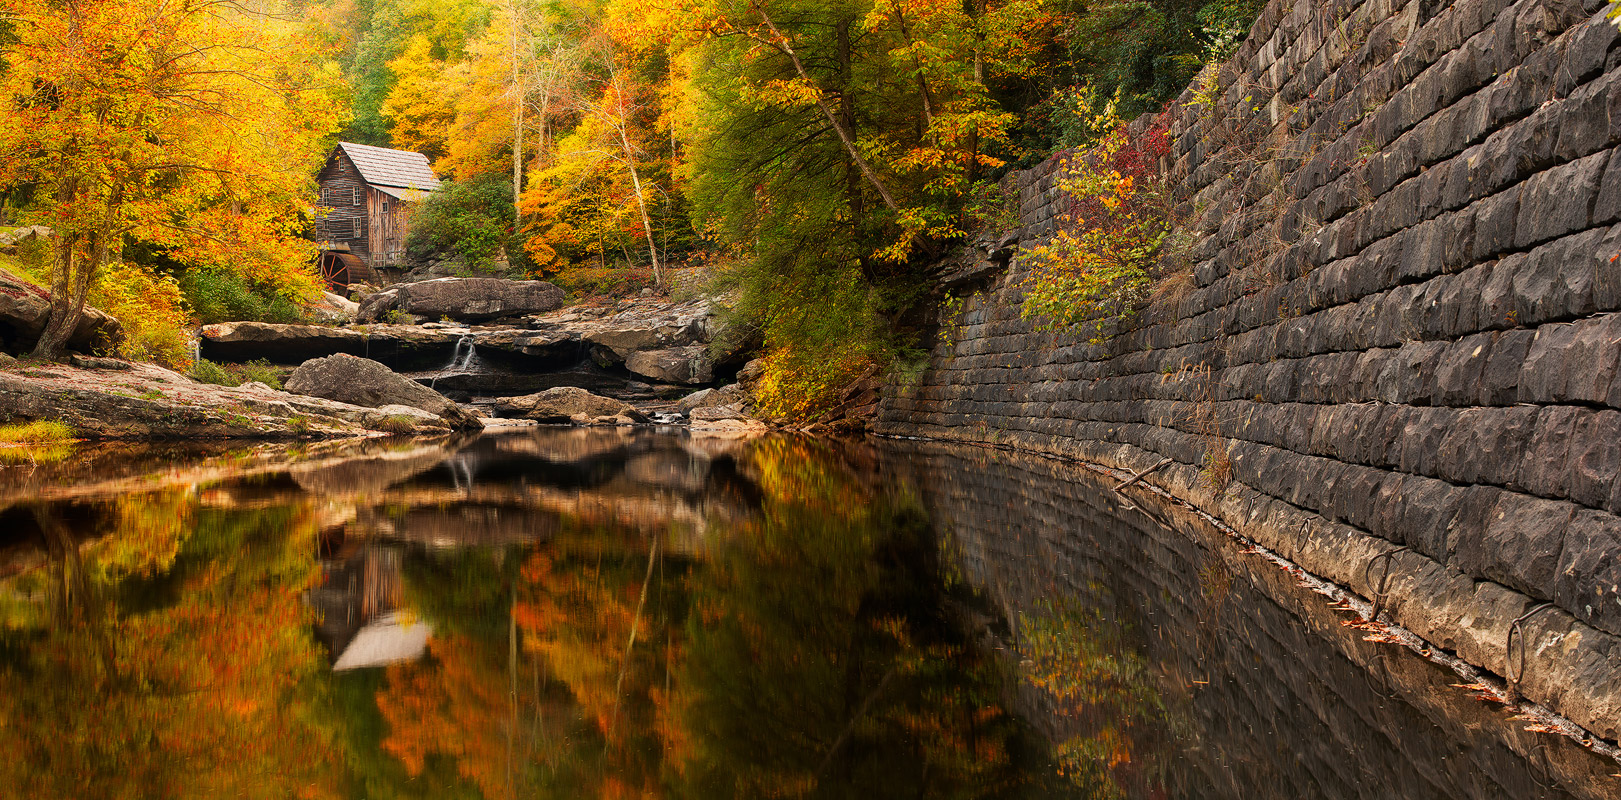 Old Time Fame, Glade Creek Grist Mill, West Virginia, Babcock State Park, panoramic, reflection, solitude, water, waterfalls, old structure, fame, autumn, fall, colors, panoramic, bernard chen, photo